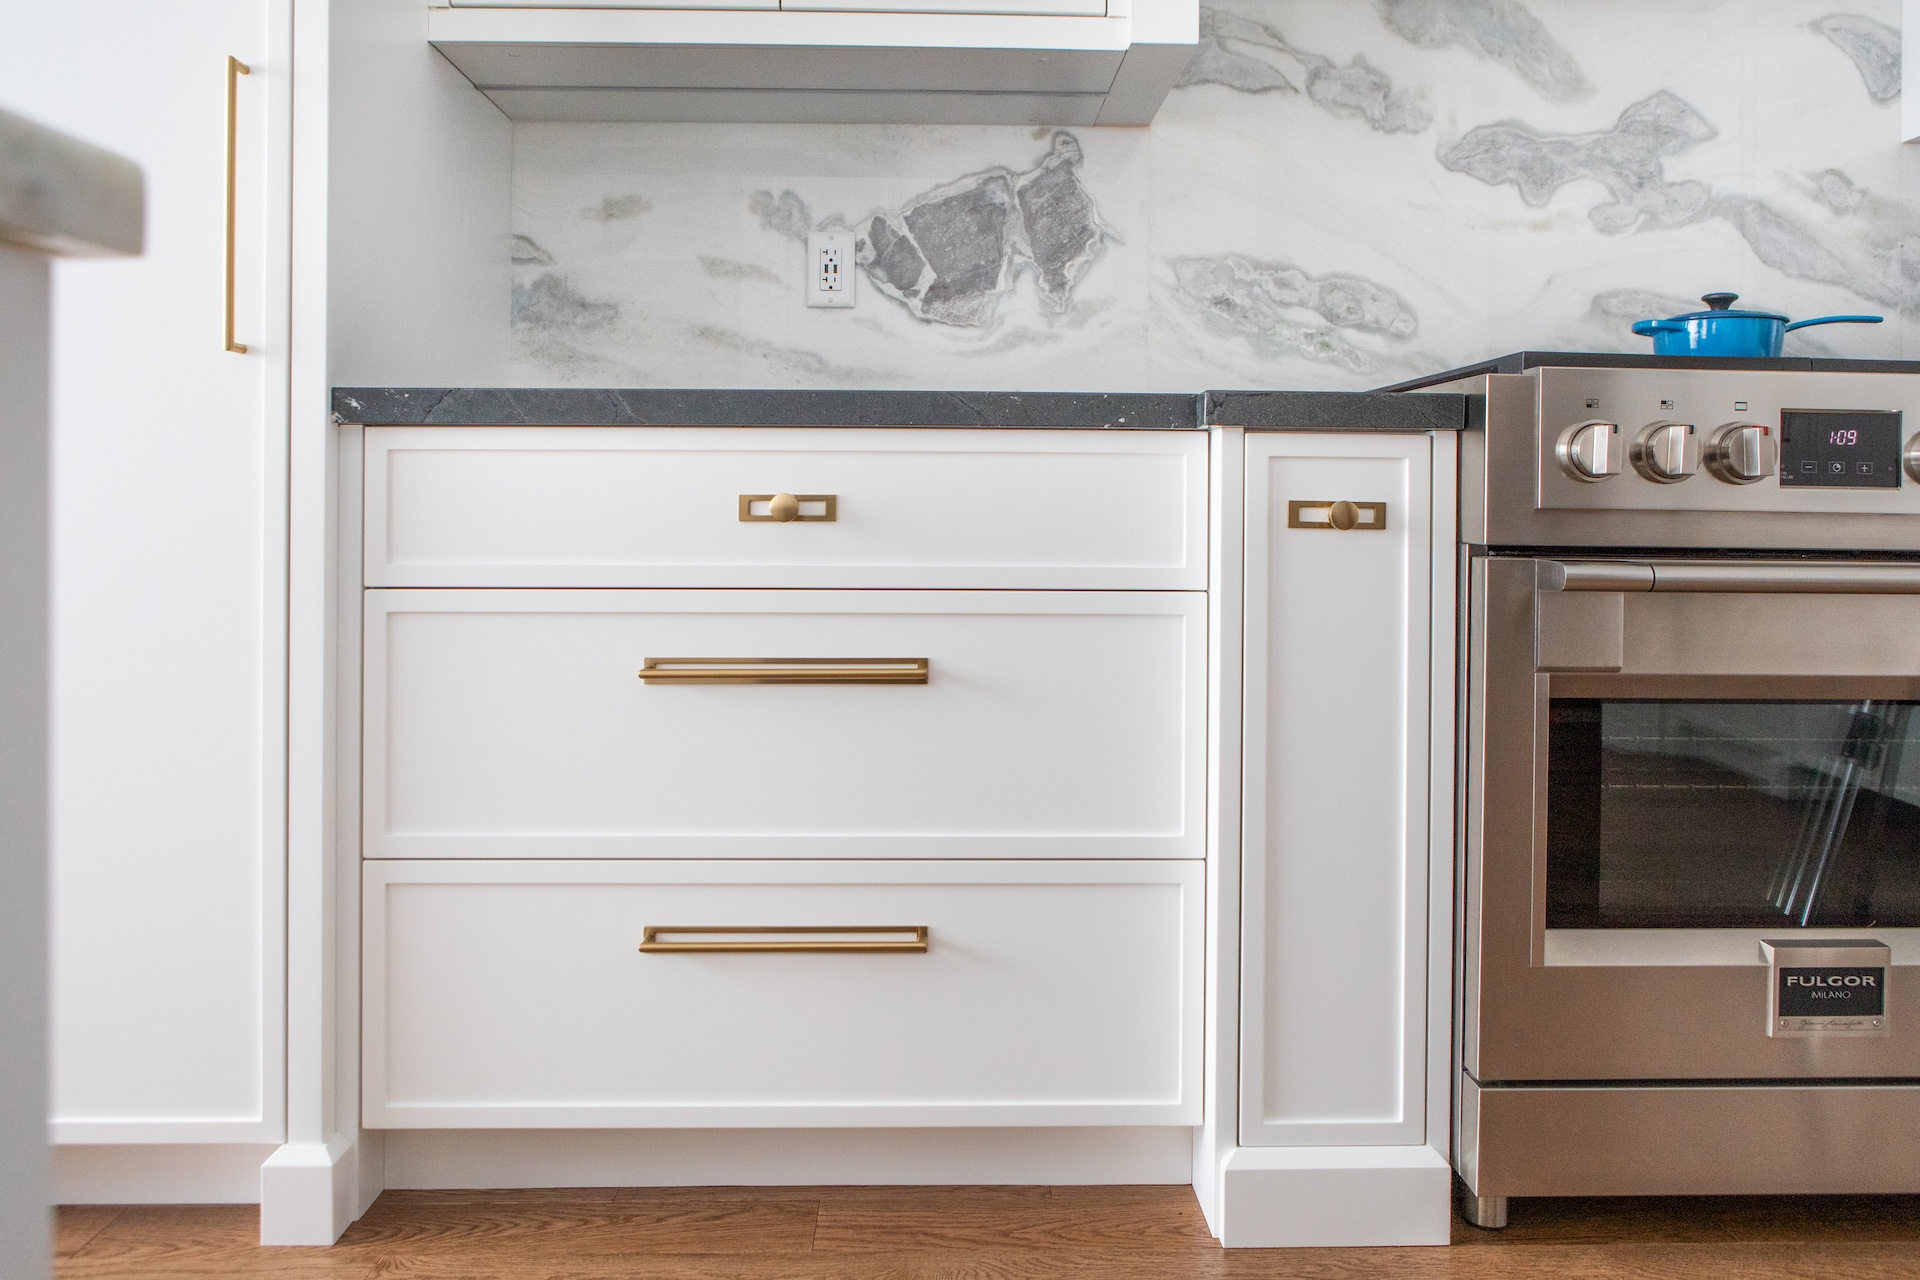 White kitchen with gold hardware and oven